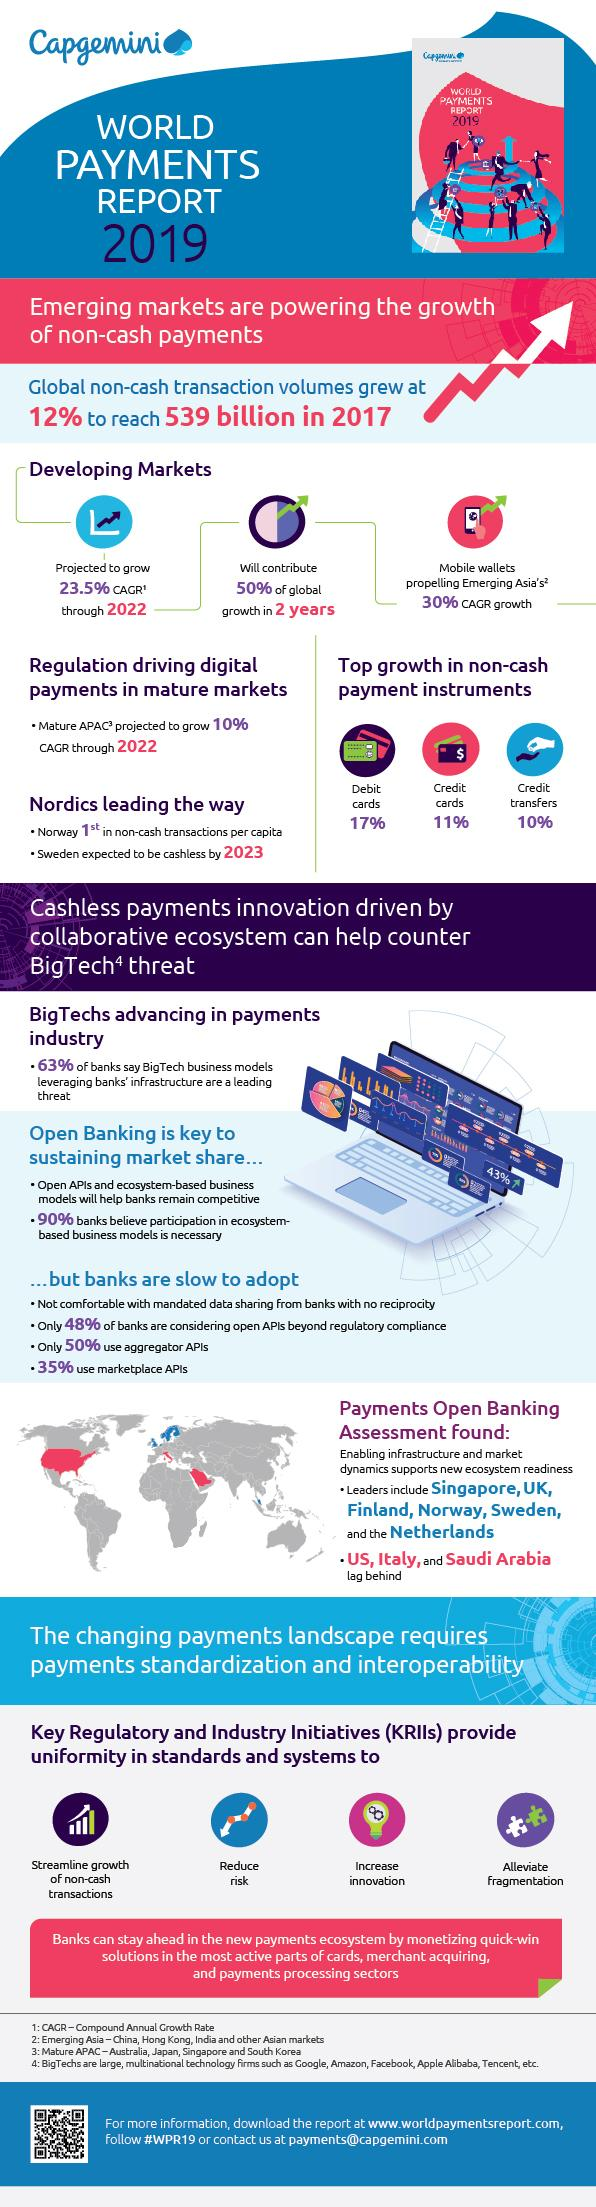 World Payments Report 2019: Non-Cash Payments Booming as Banks Face Change